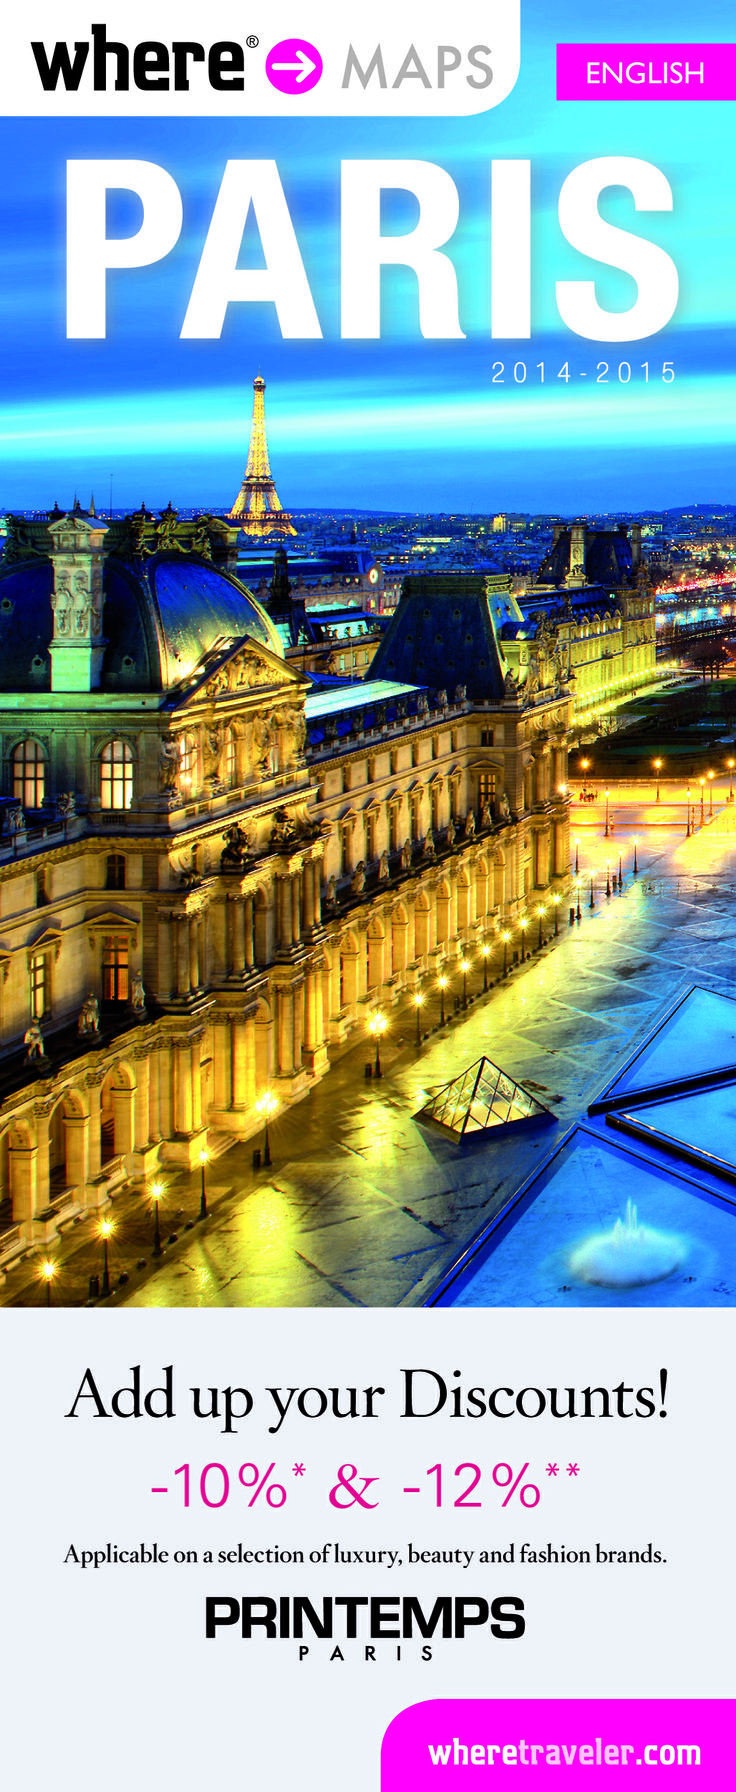 Map Of Paris And Attractions%0A Where Maps  english